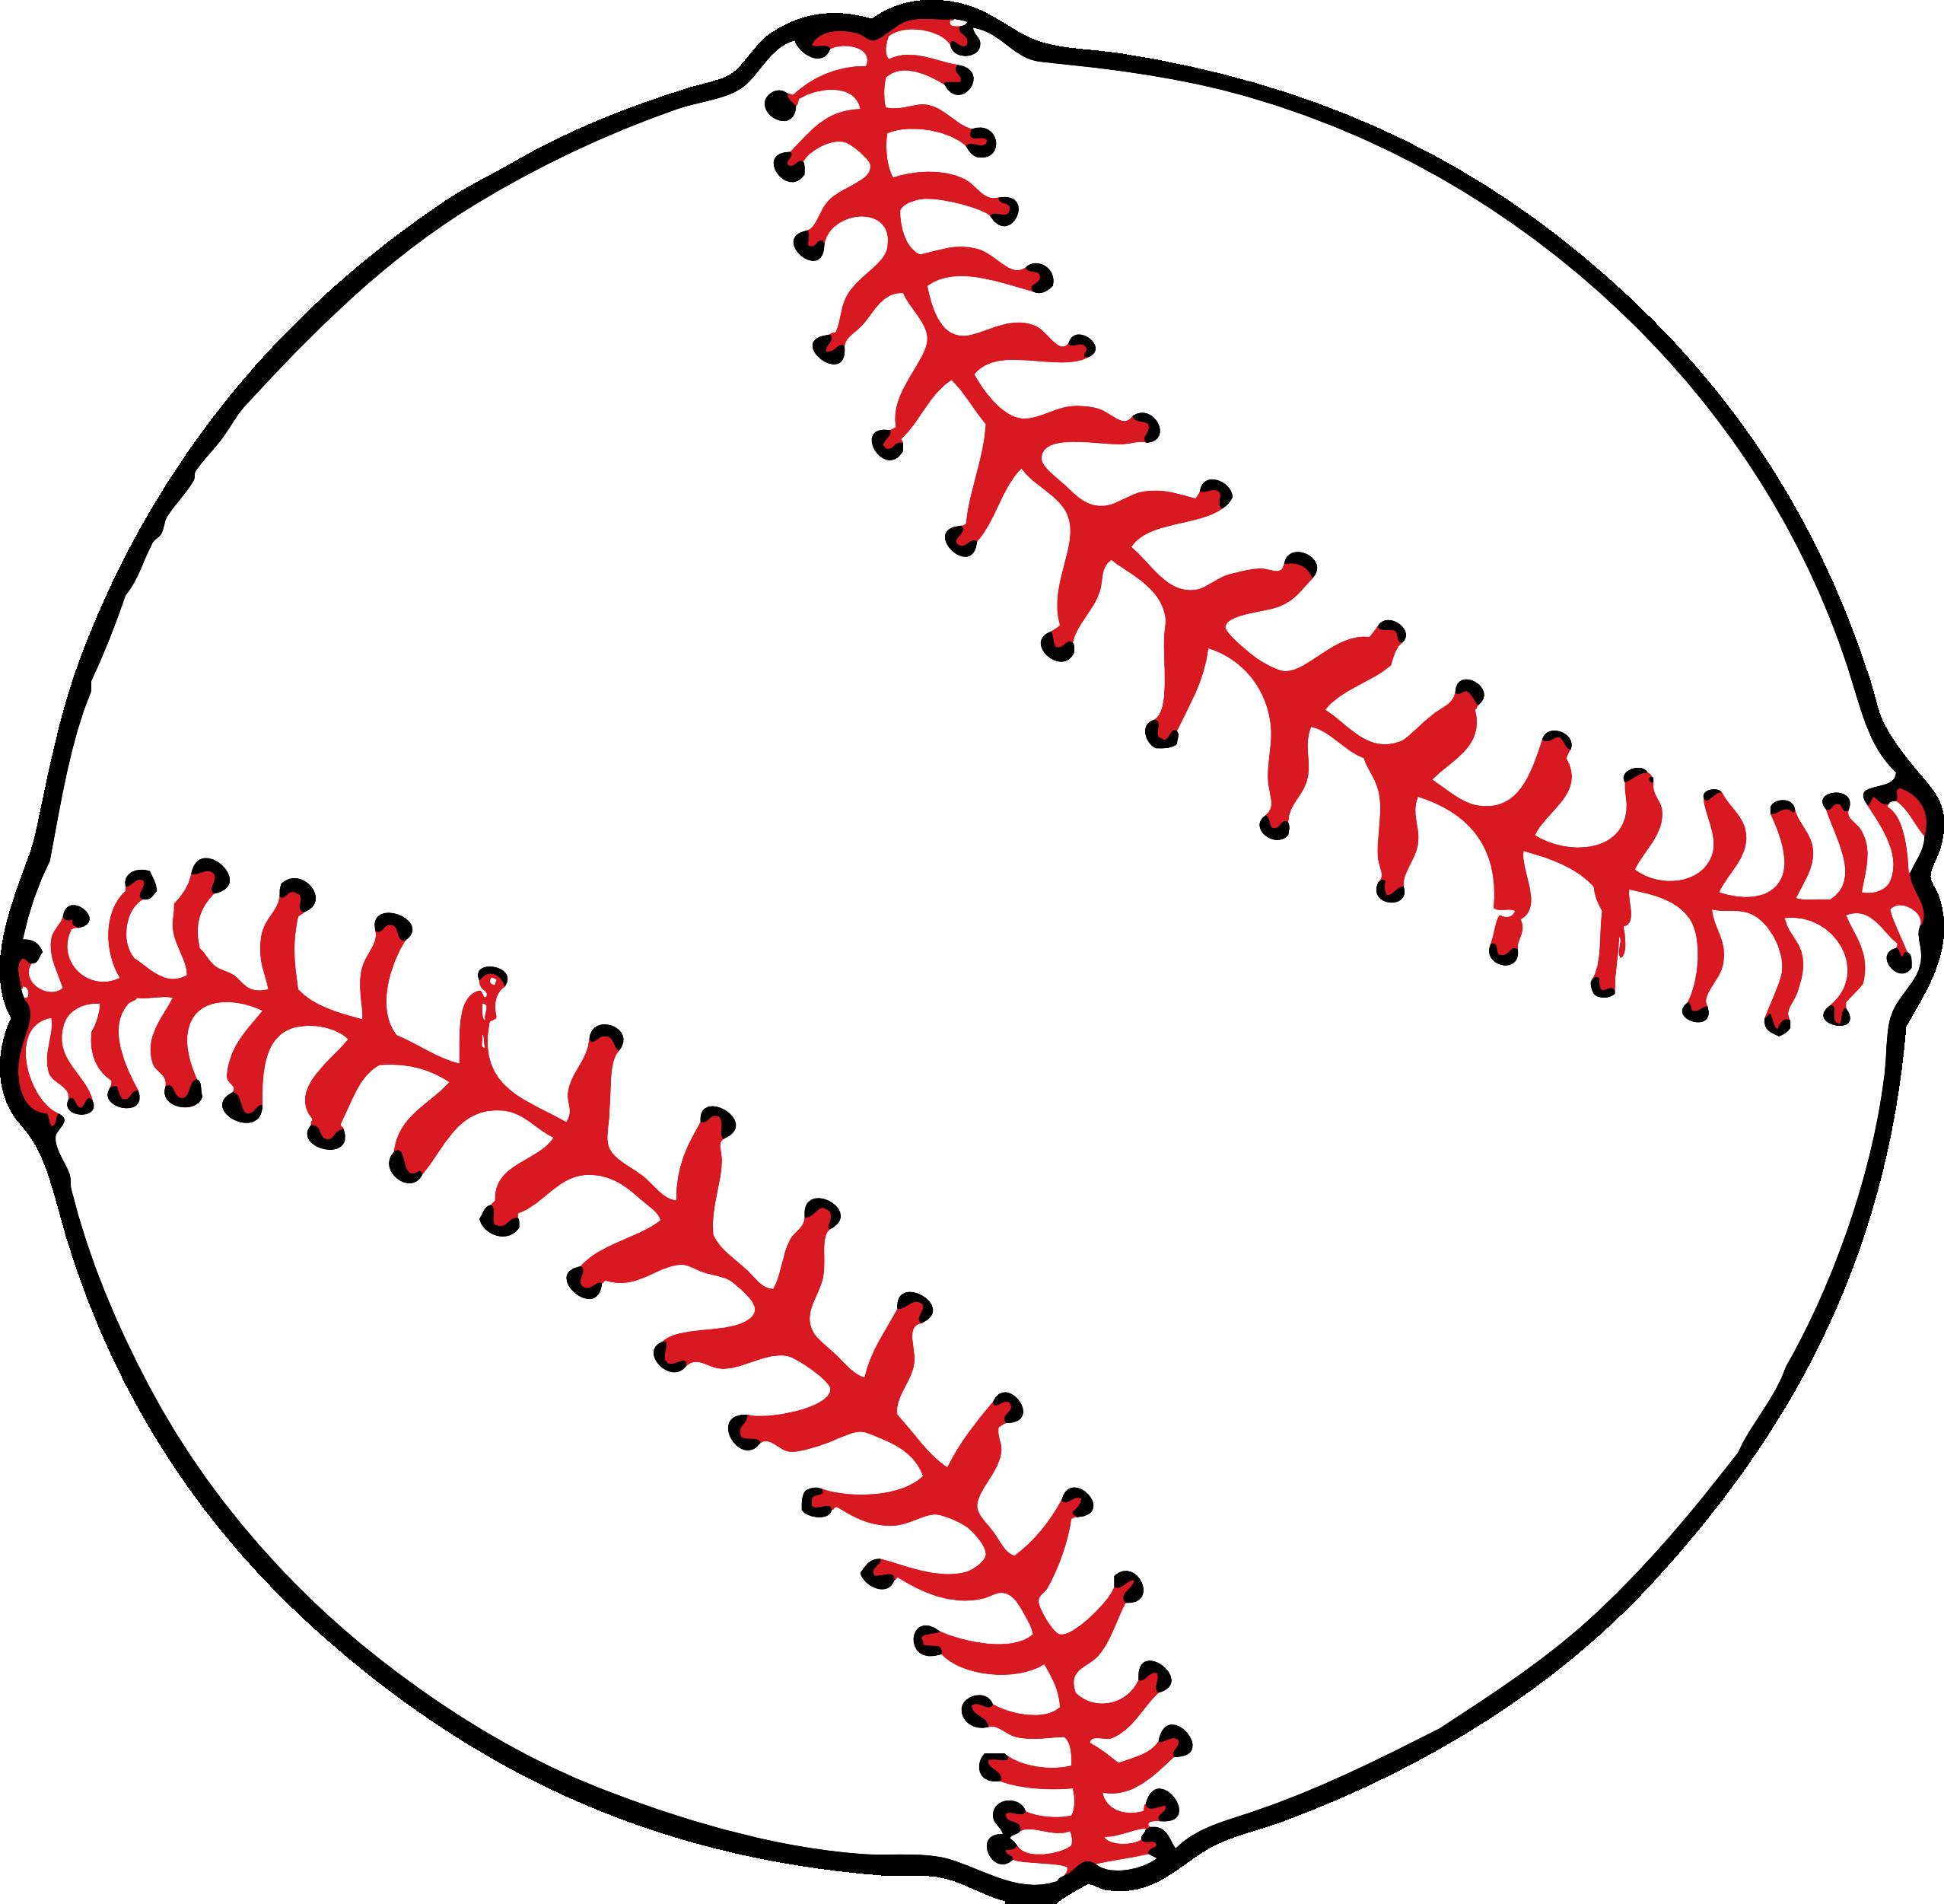 Bat And Ball Clipart At Getdrawings Com Free For Personal Use Bat